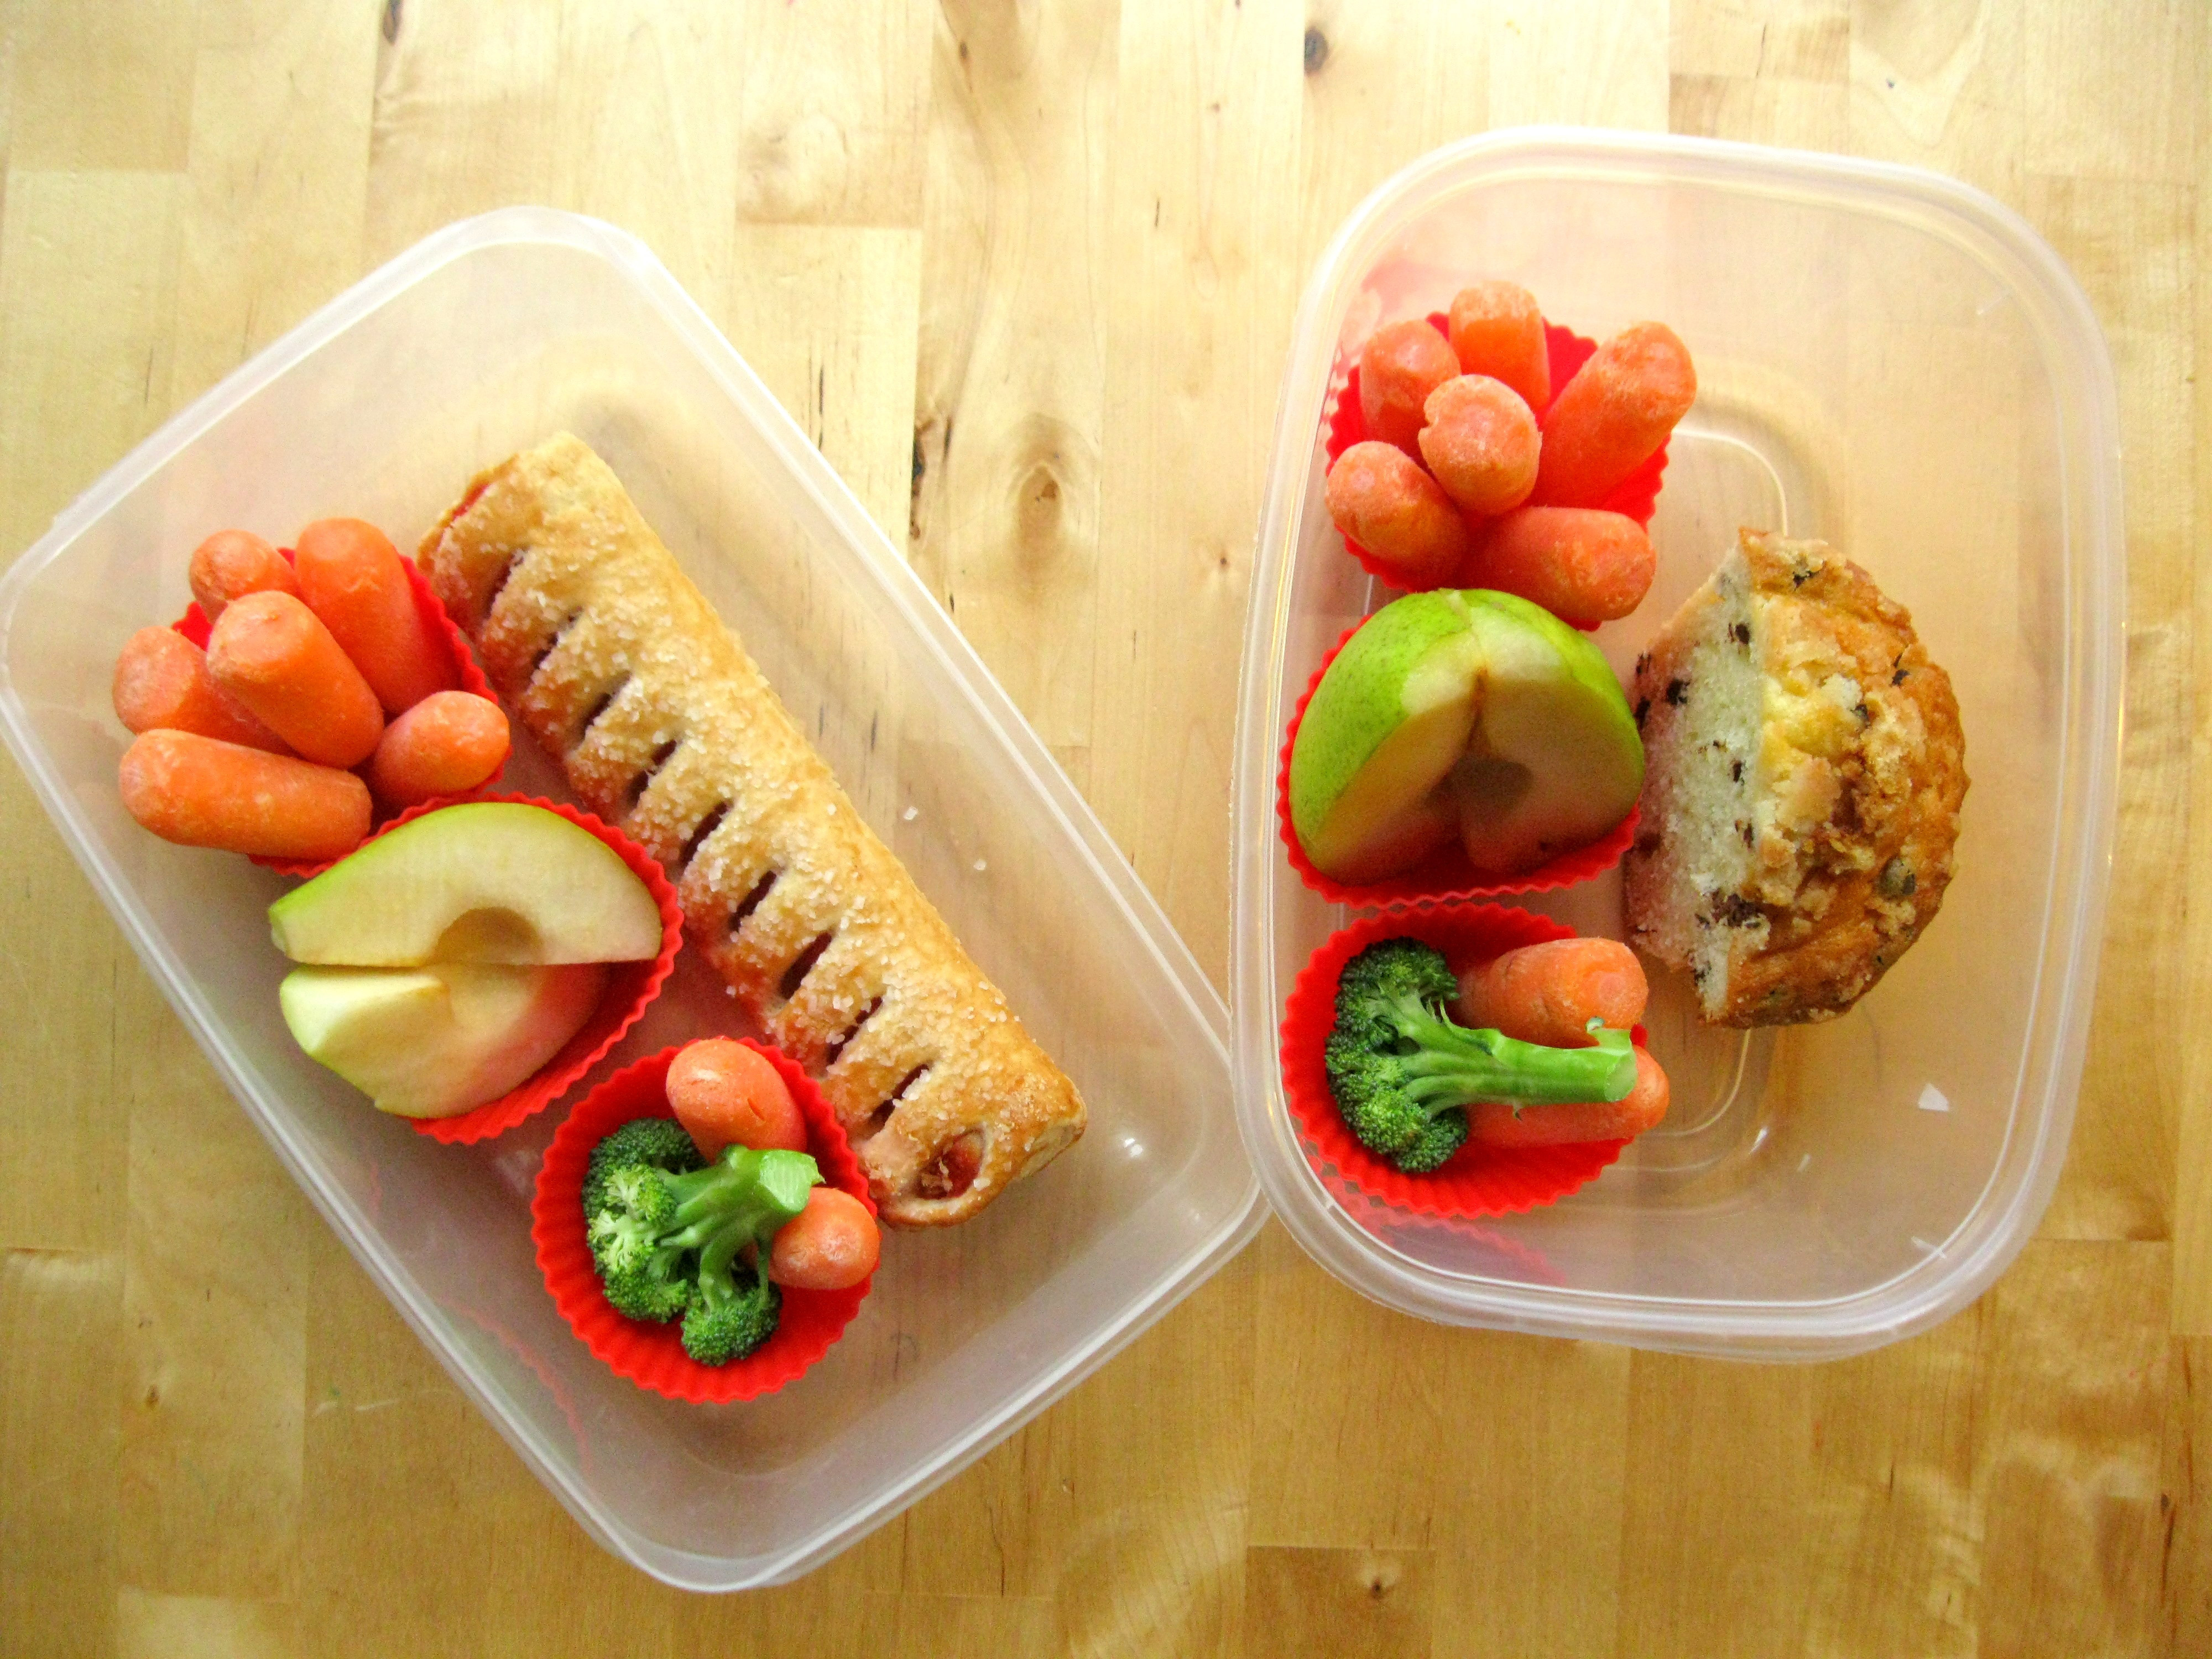 Healthy Snacks For Infants  In the Kitchen Self Serving Snack Box Tutorial and